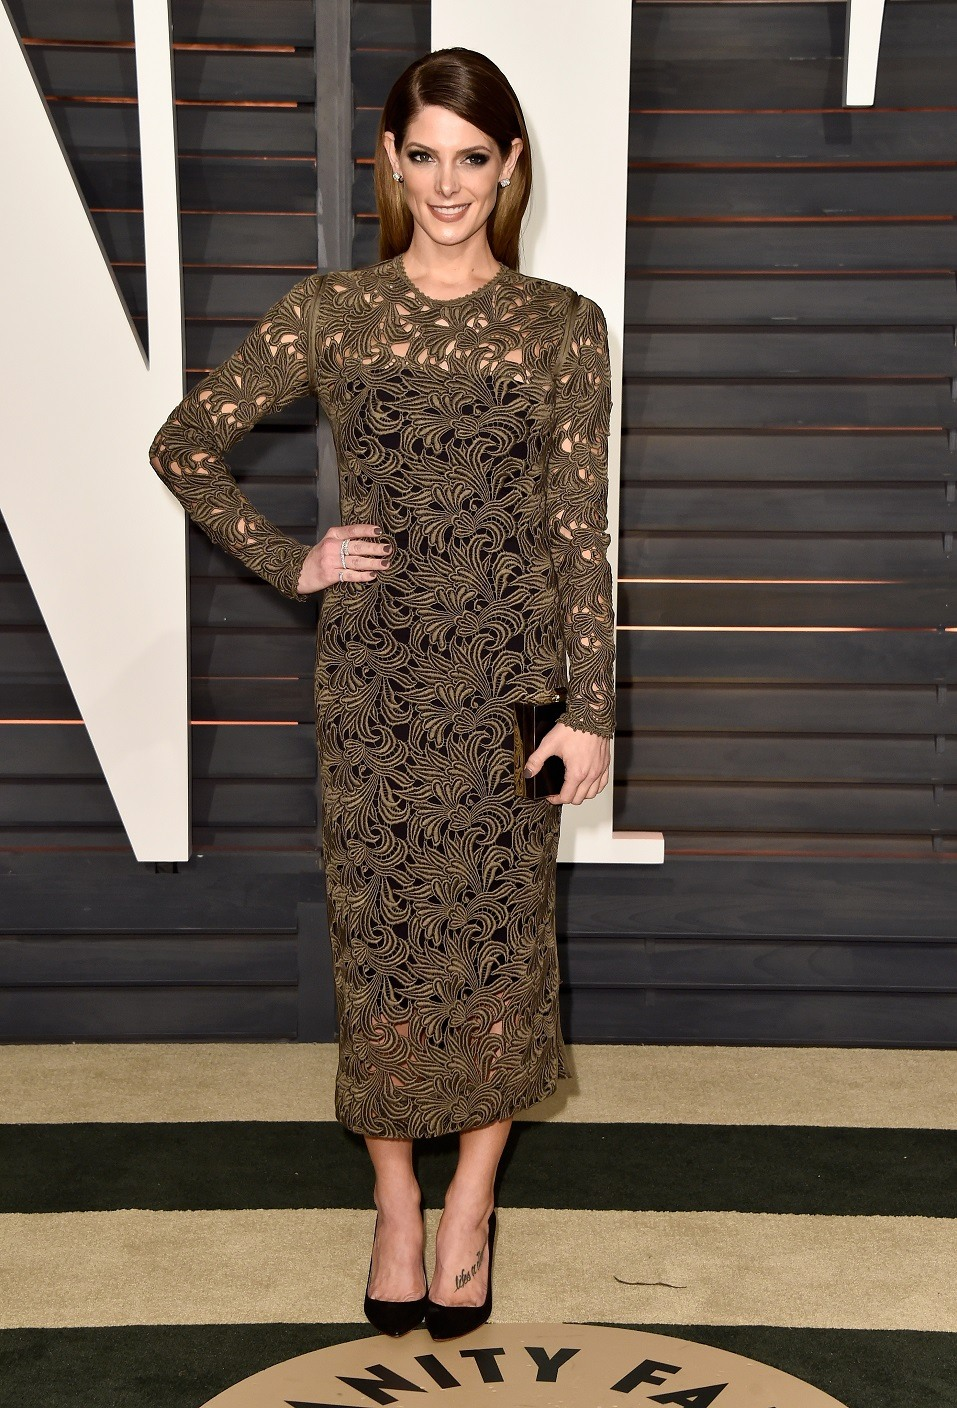 Actress Ashley Greene attends the 2015 Vanity Fair Oscar Party